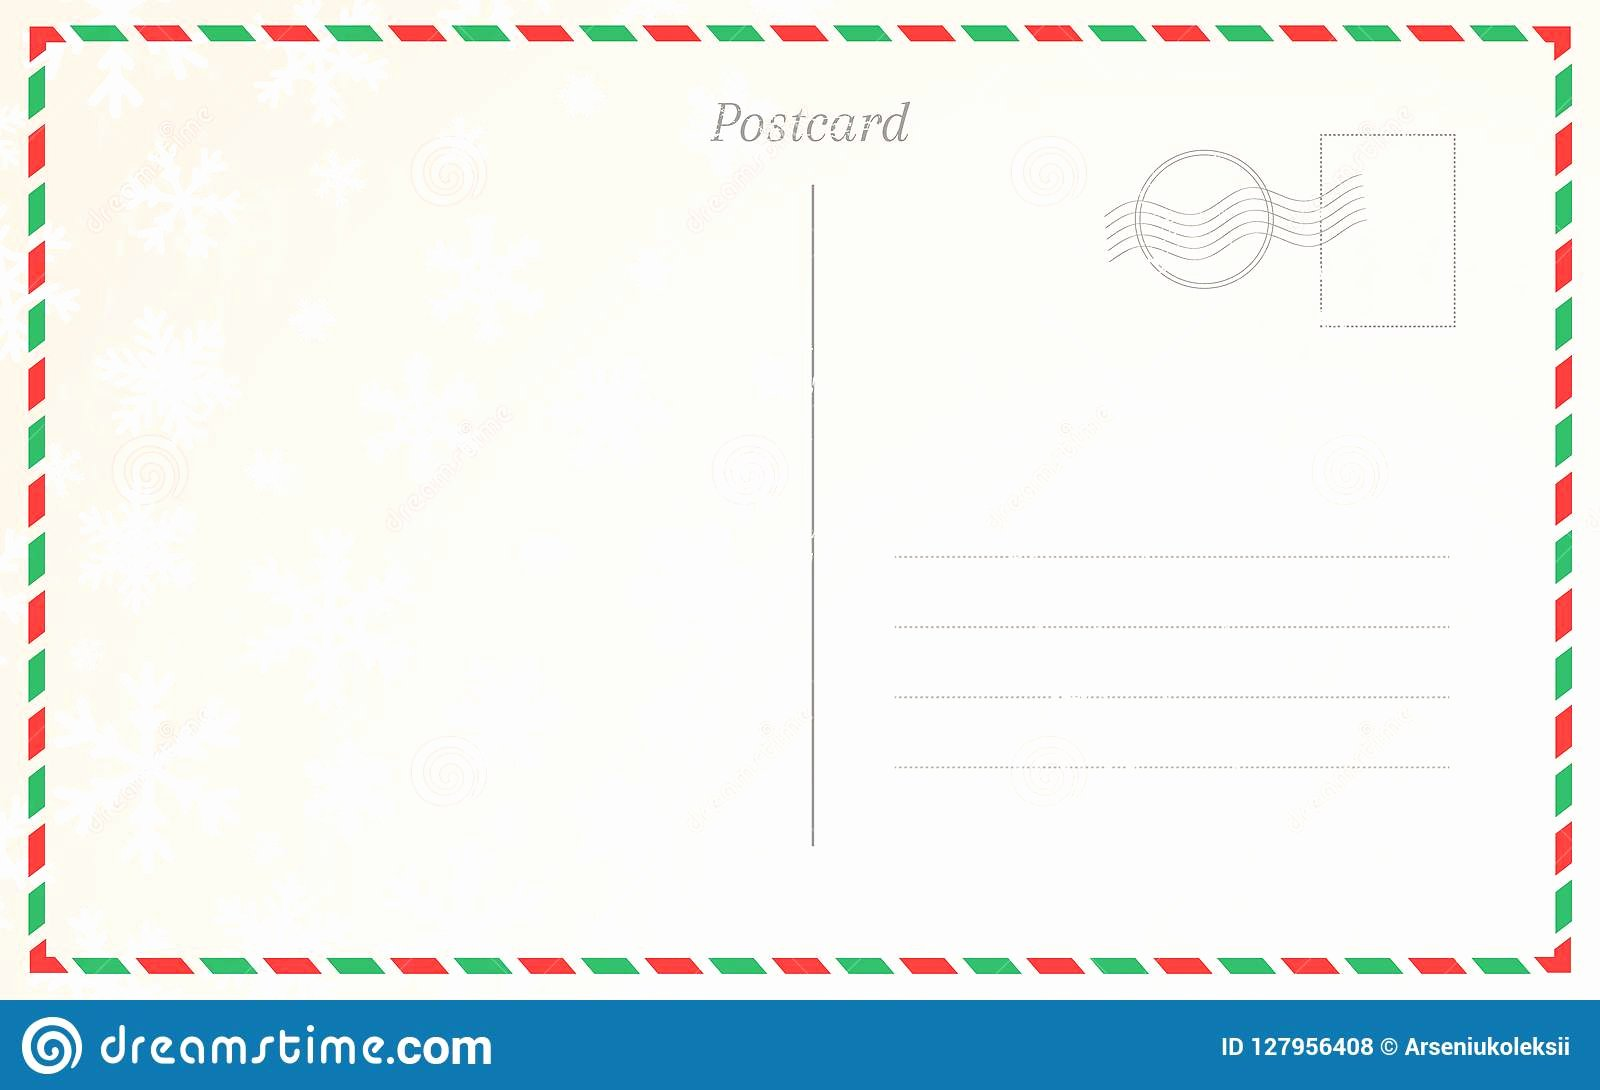 Back Of Postcard Template Best Of Old Postal Card Template with Winter Snowflakes Postcard